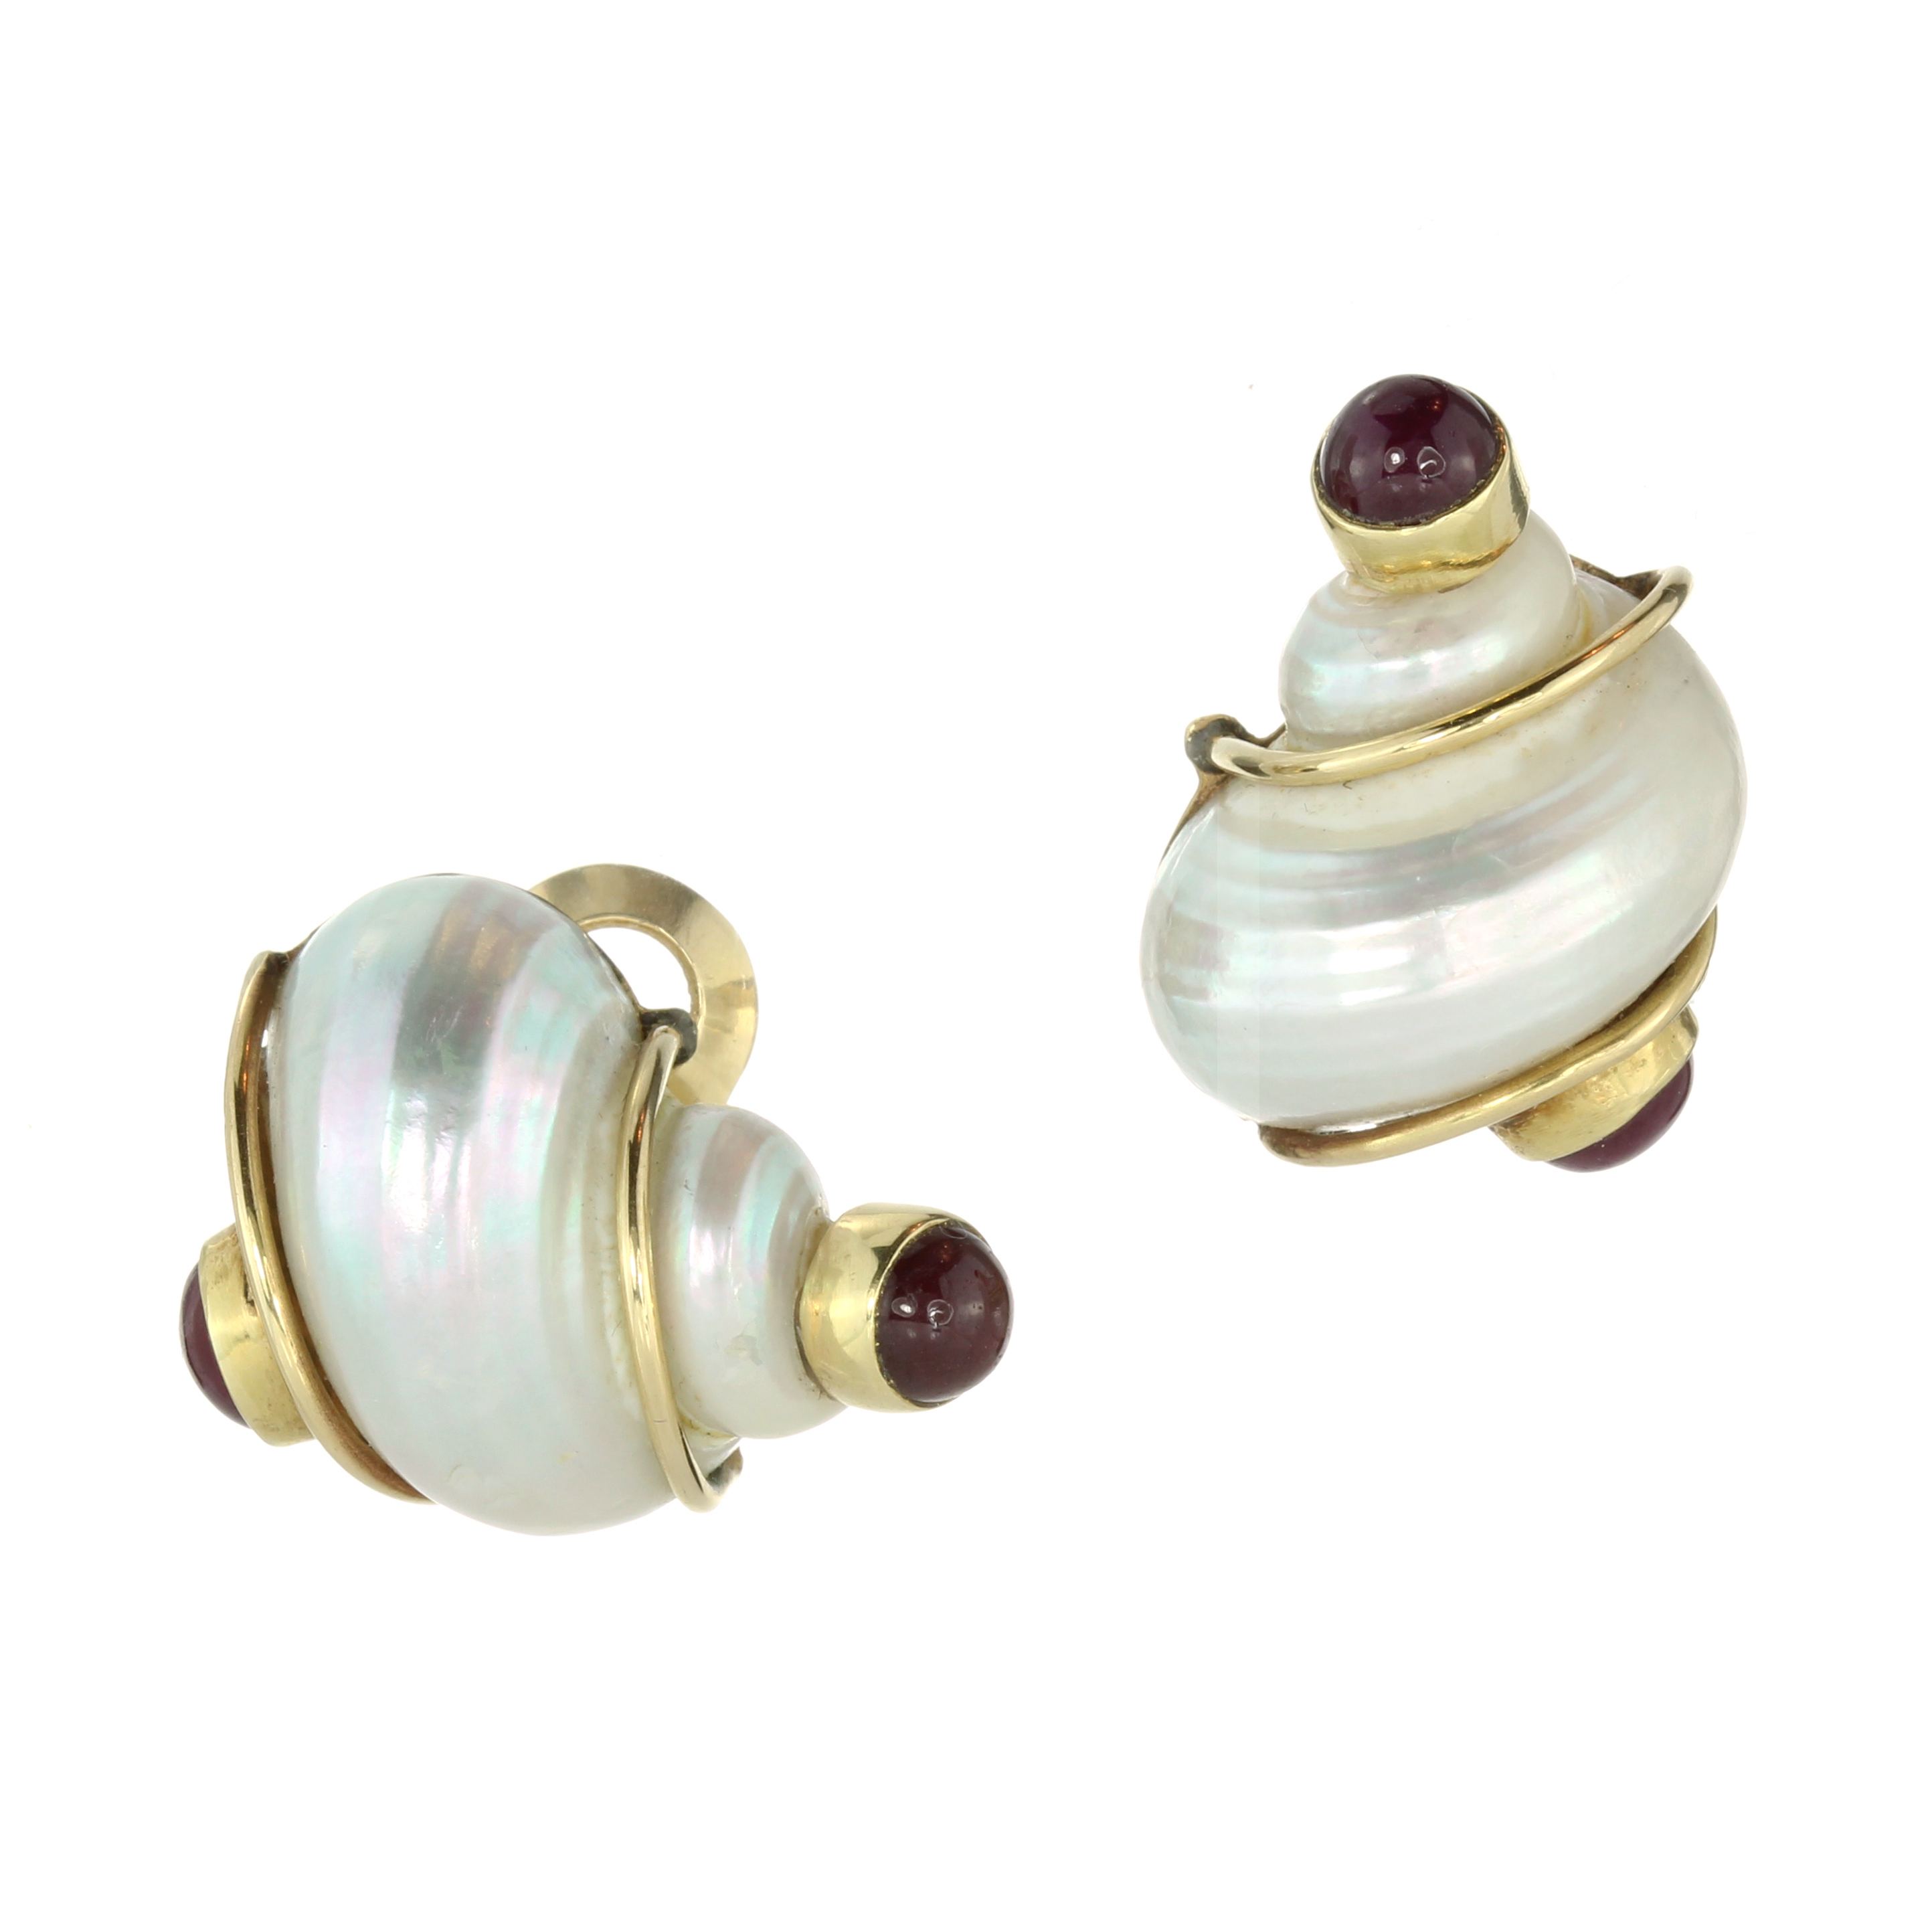 Los 2 - A PAIR OF RUBY AND MOTHER OF PEARL SHELL CLIP EARRINGS, SEAMAN SCHEPPS CIRCA 1970 each designed as a